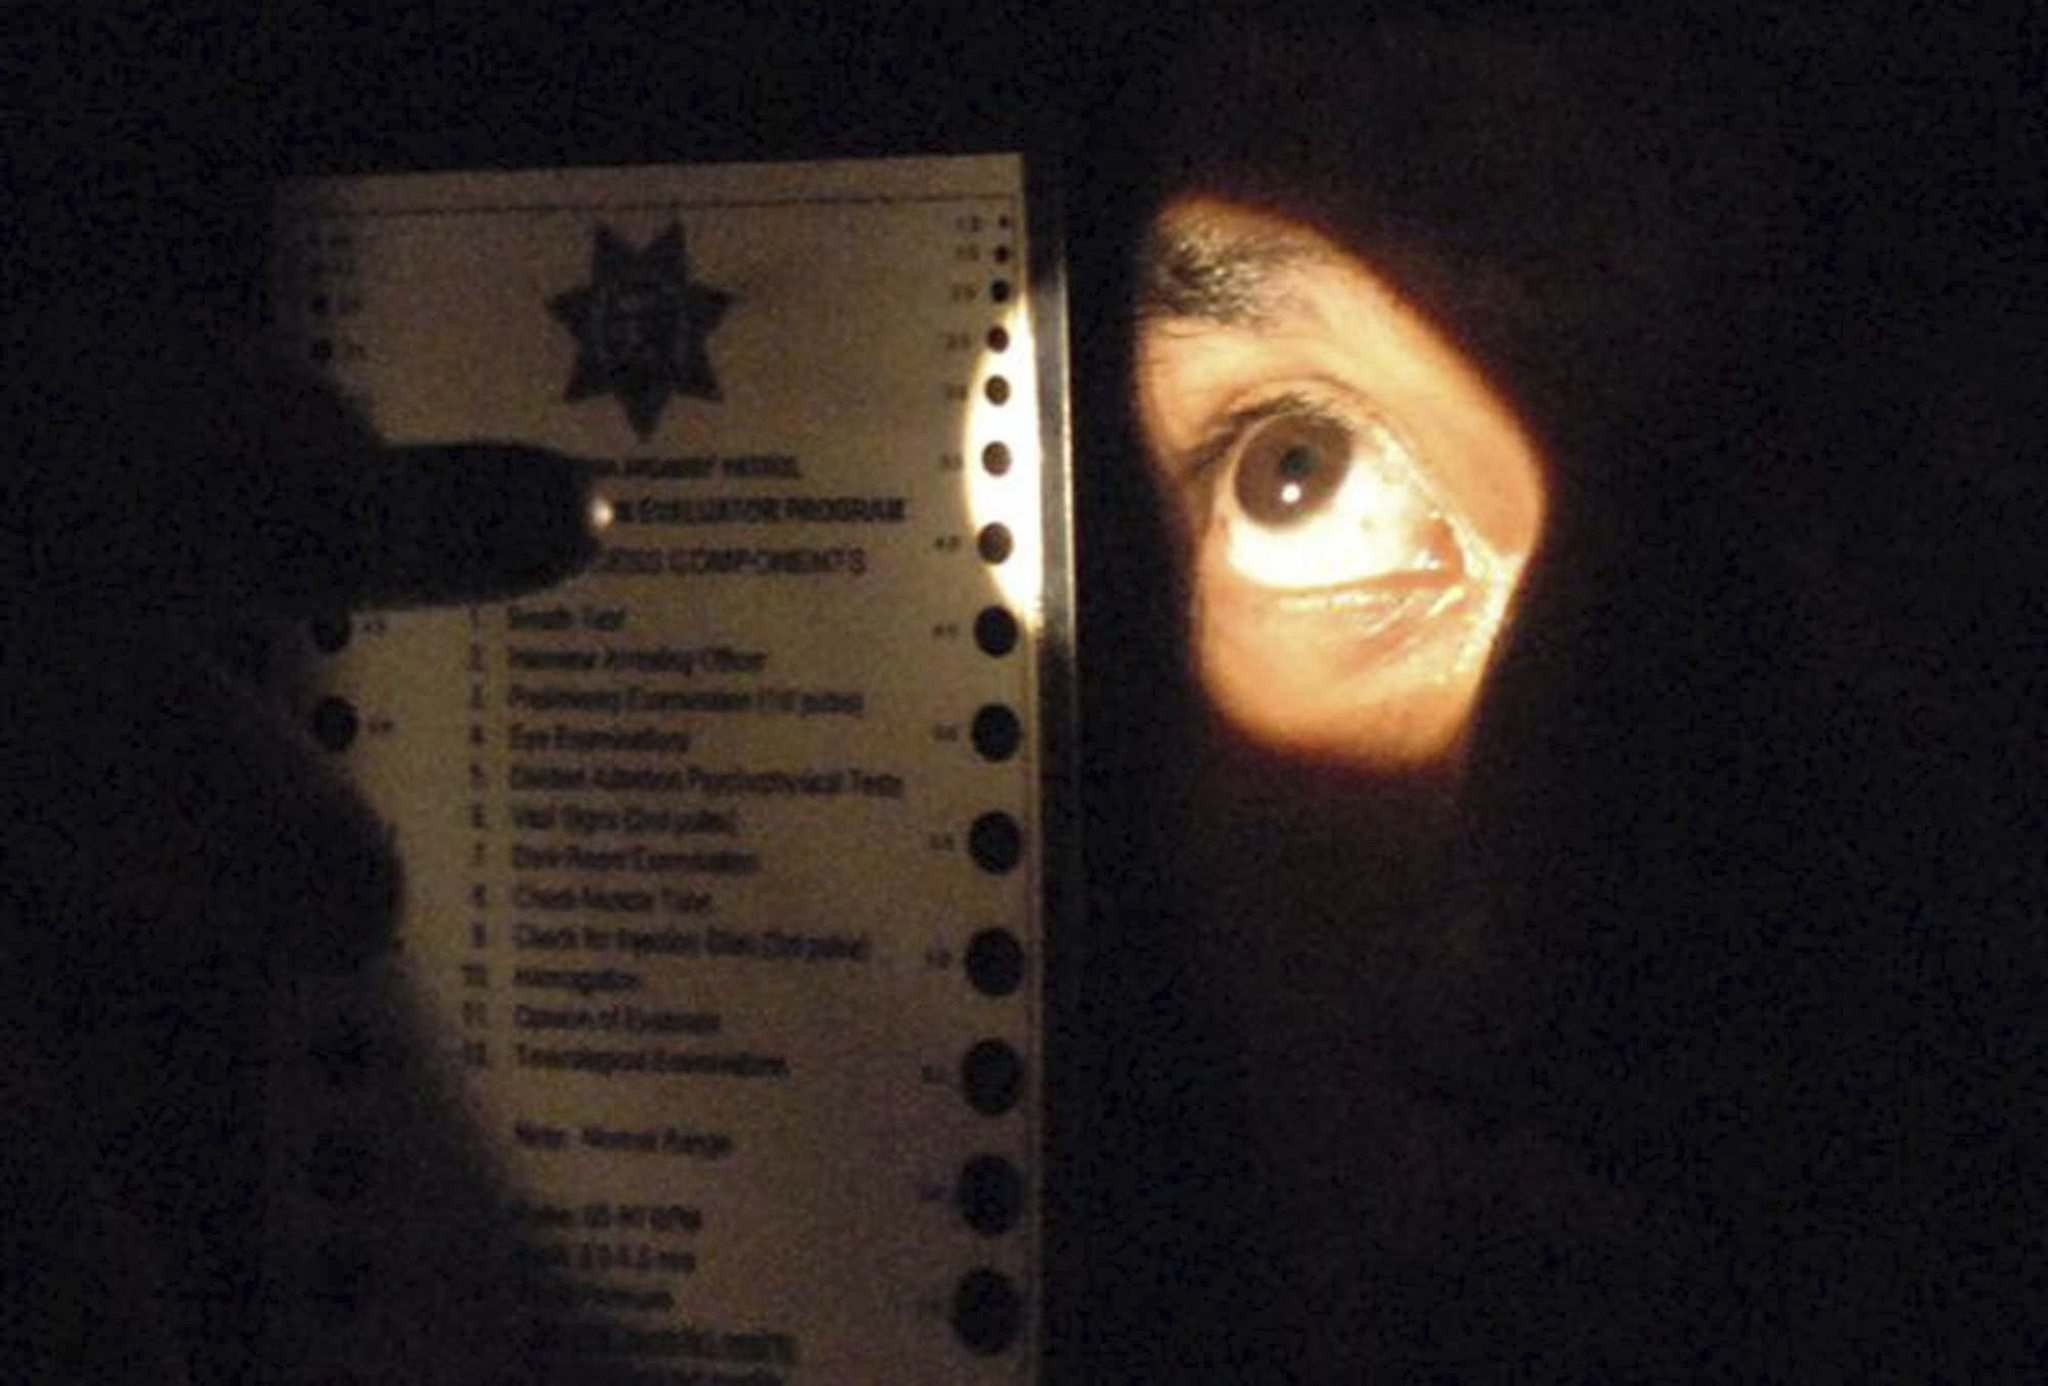 Joe McHugh / California Highway Patrol</p><p>Officers who are trained as Drug Recognition Evaluators perform darkroom examinations of the eyes looking for signs of drug impairment. These examinations include measuring the size of the pupil in direct light and in near total darkness. Officers also observe the reactions of the pupil under these extreme conditions.</p>